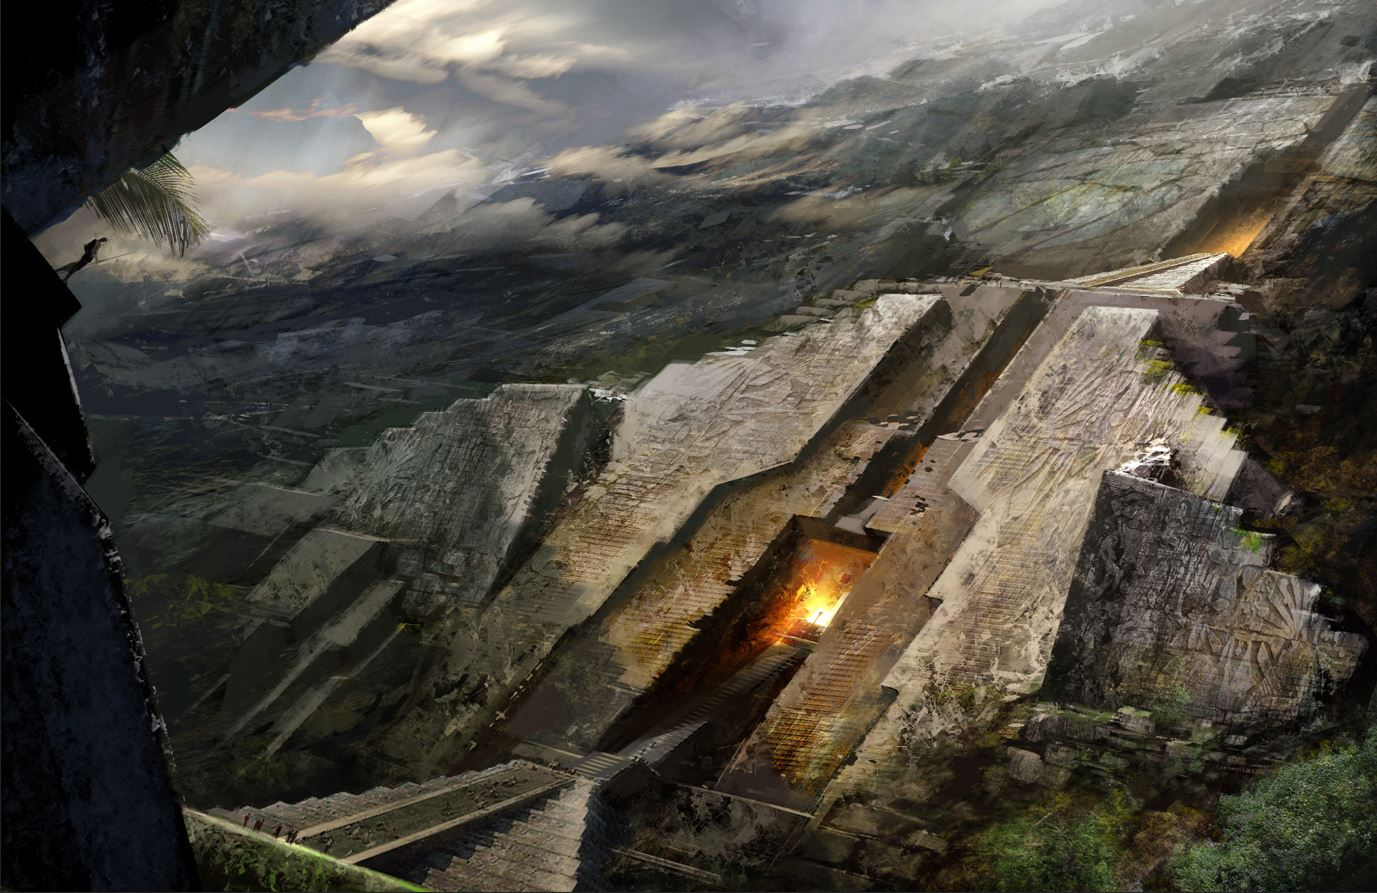 Anunnaki structures before the flood: The 200,000-year-old ancient ...